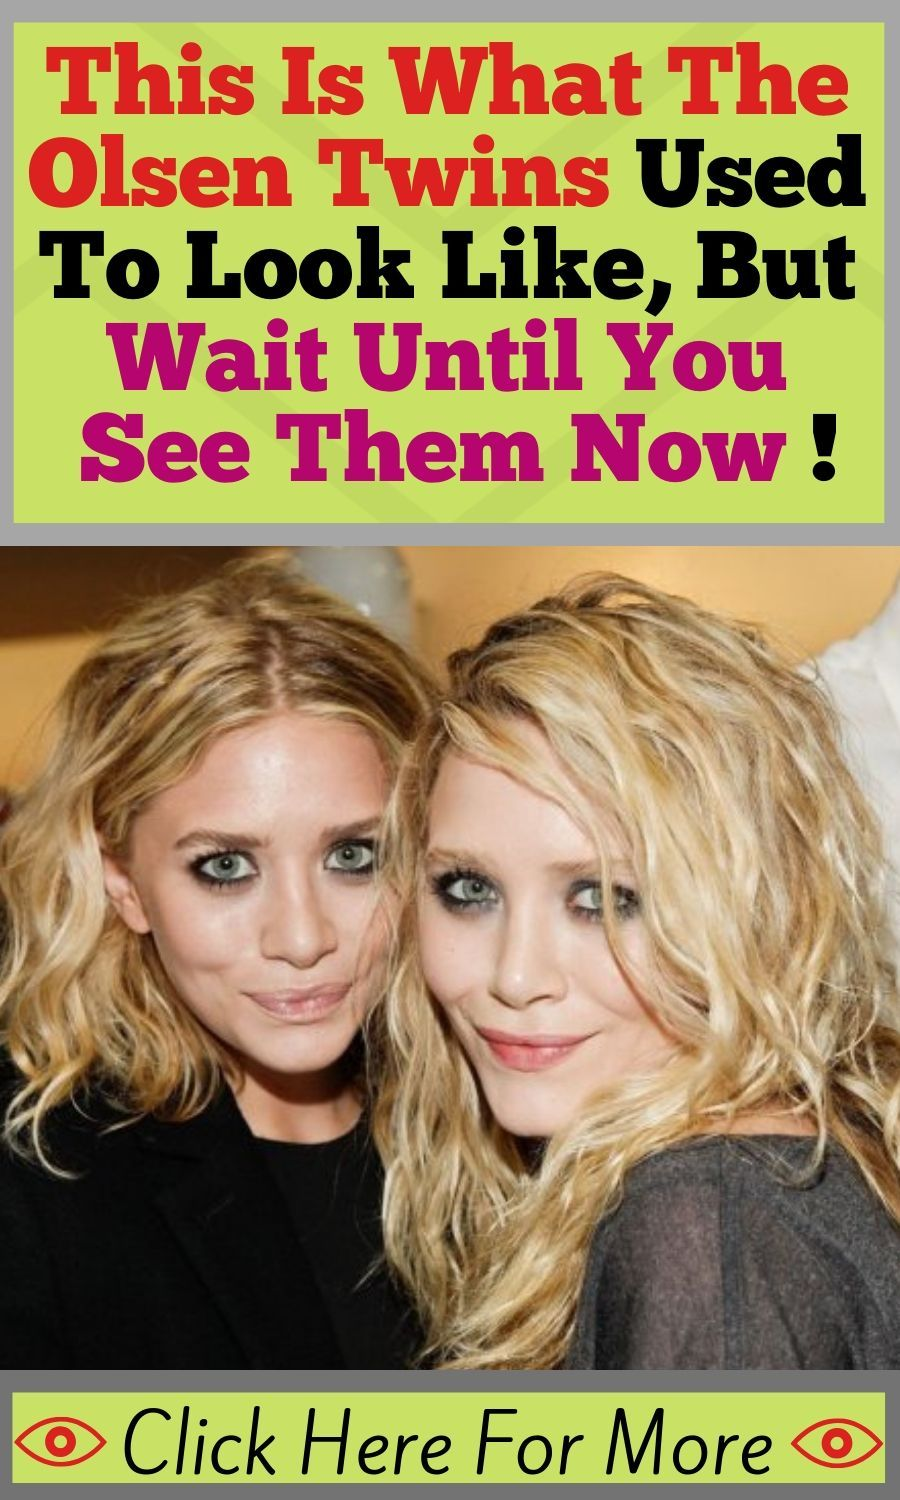 This Is What The Olsen Twins Used To Look Like, But Wait